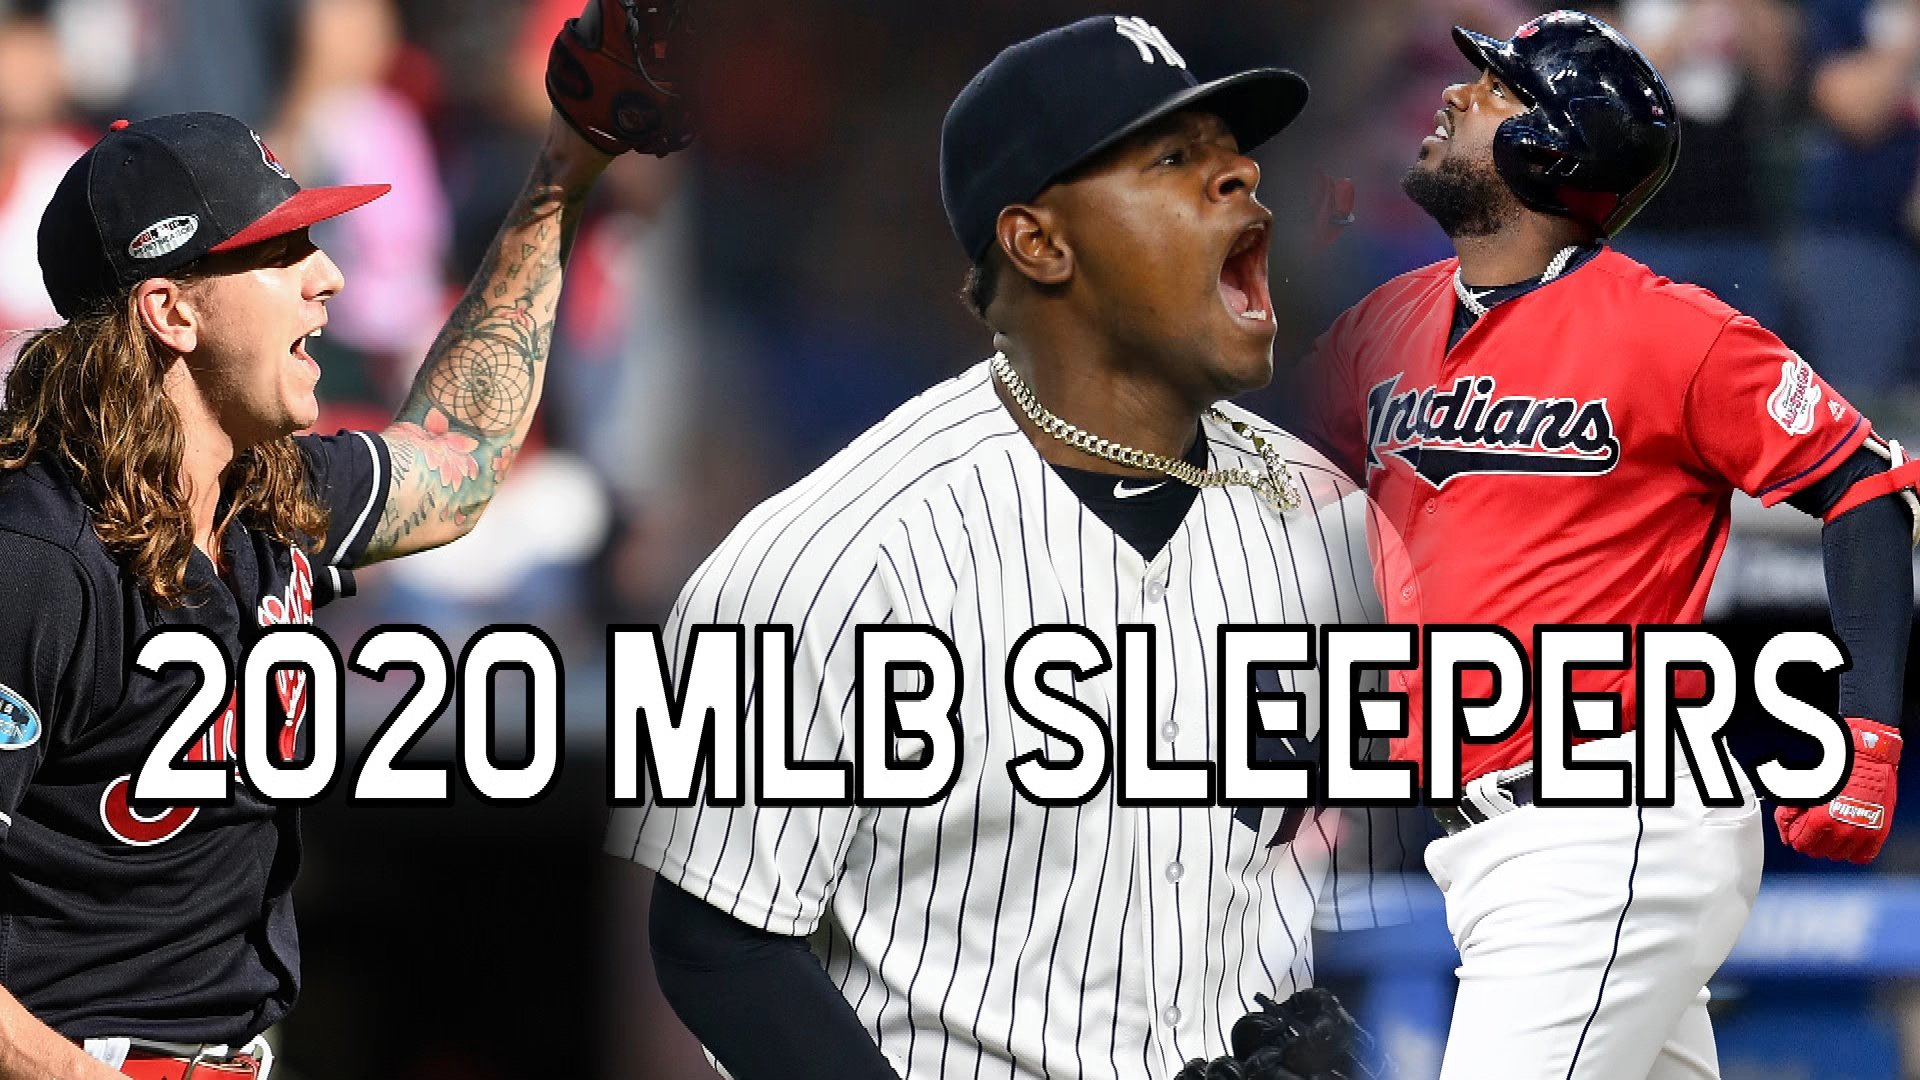 Indians' Clevinger, Rays' Snell among list of MLB fantasy sleepers